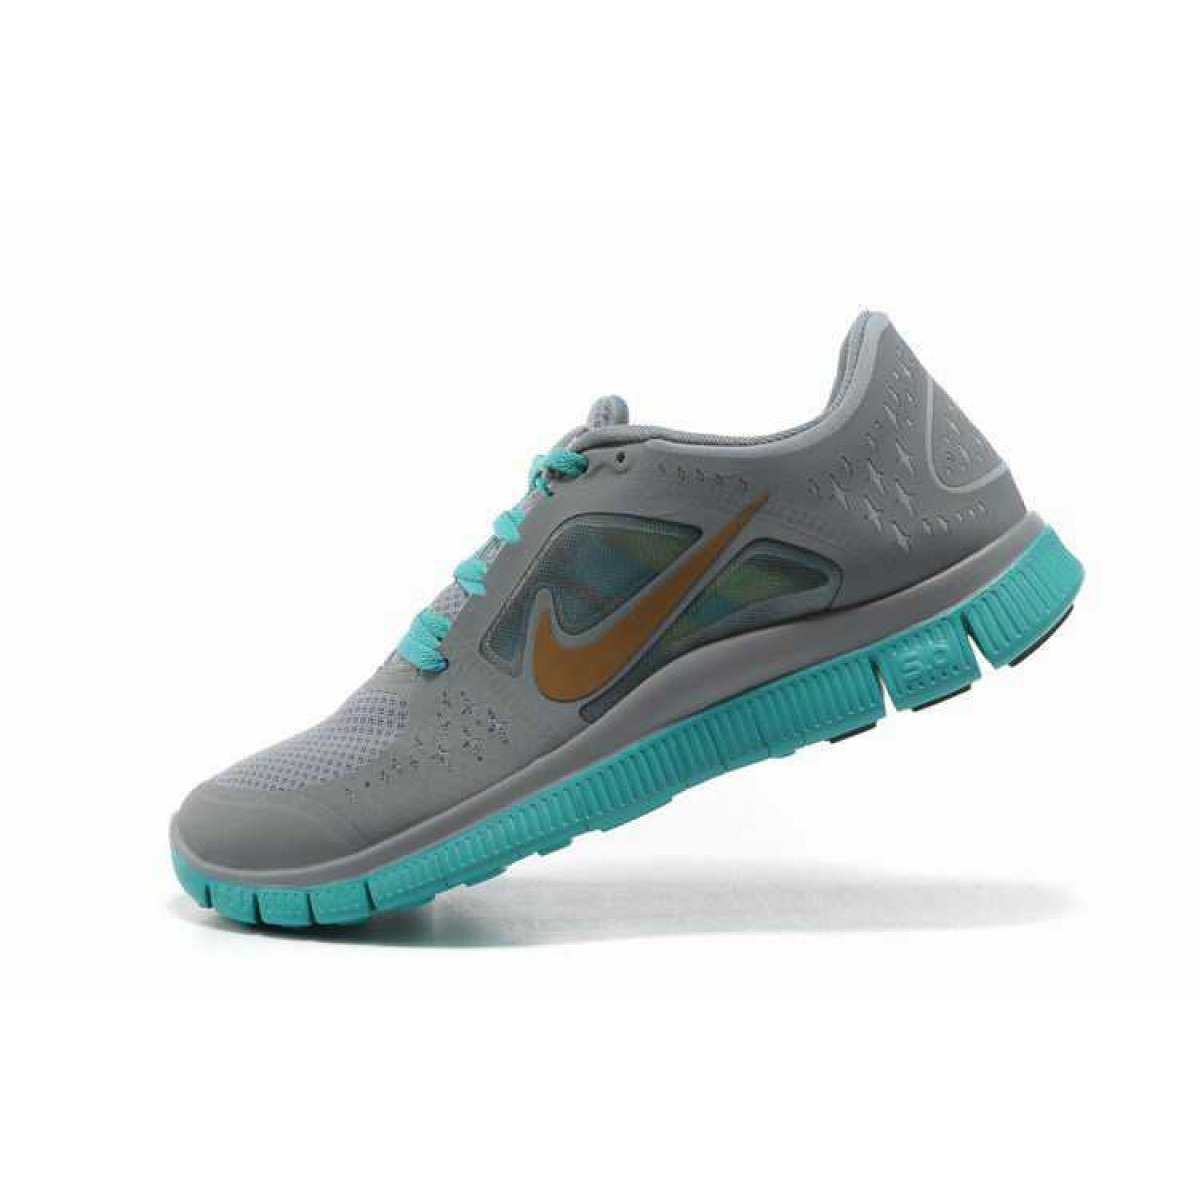 the best attitude ef5cc be940 Nike Free 5.0 V4 Homme Chaussures Gris Light Vert,nike free vetement pas  cher,